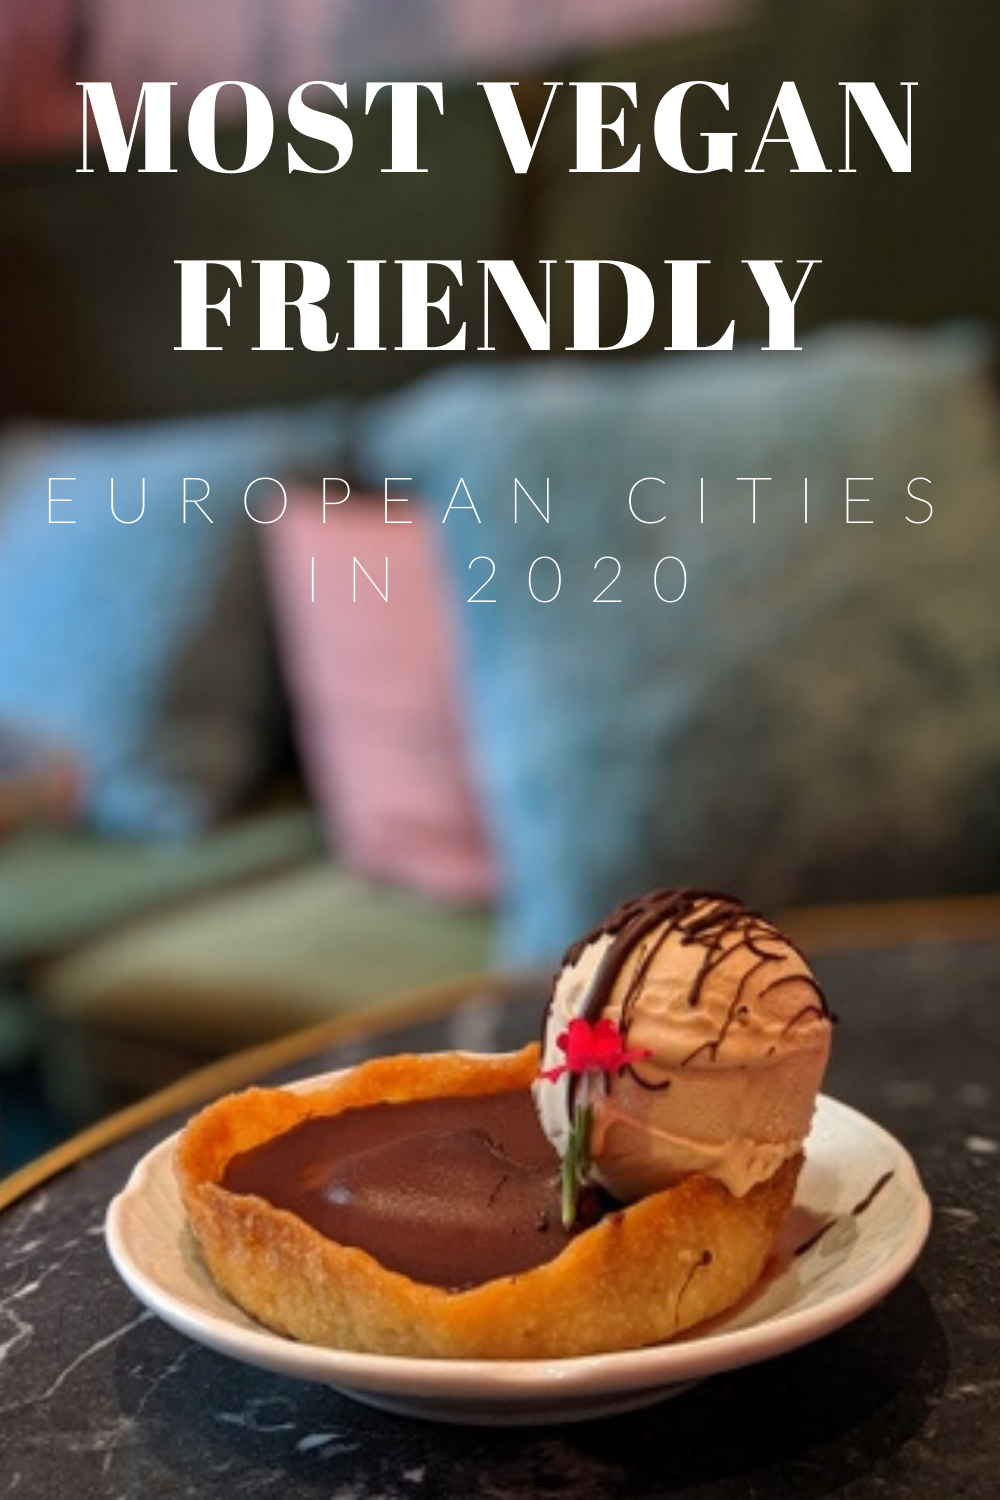 The most vegan friendly cities in Europe of 2020 are here! Click to find out the best cities for vegans in Europe in 2020!